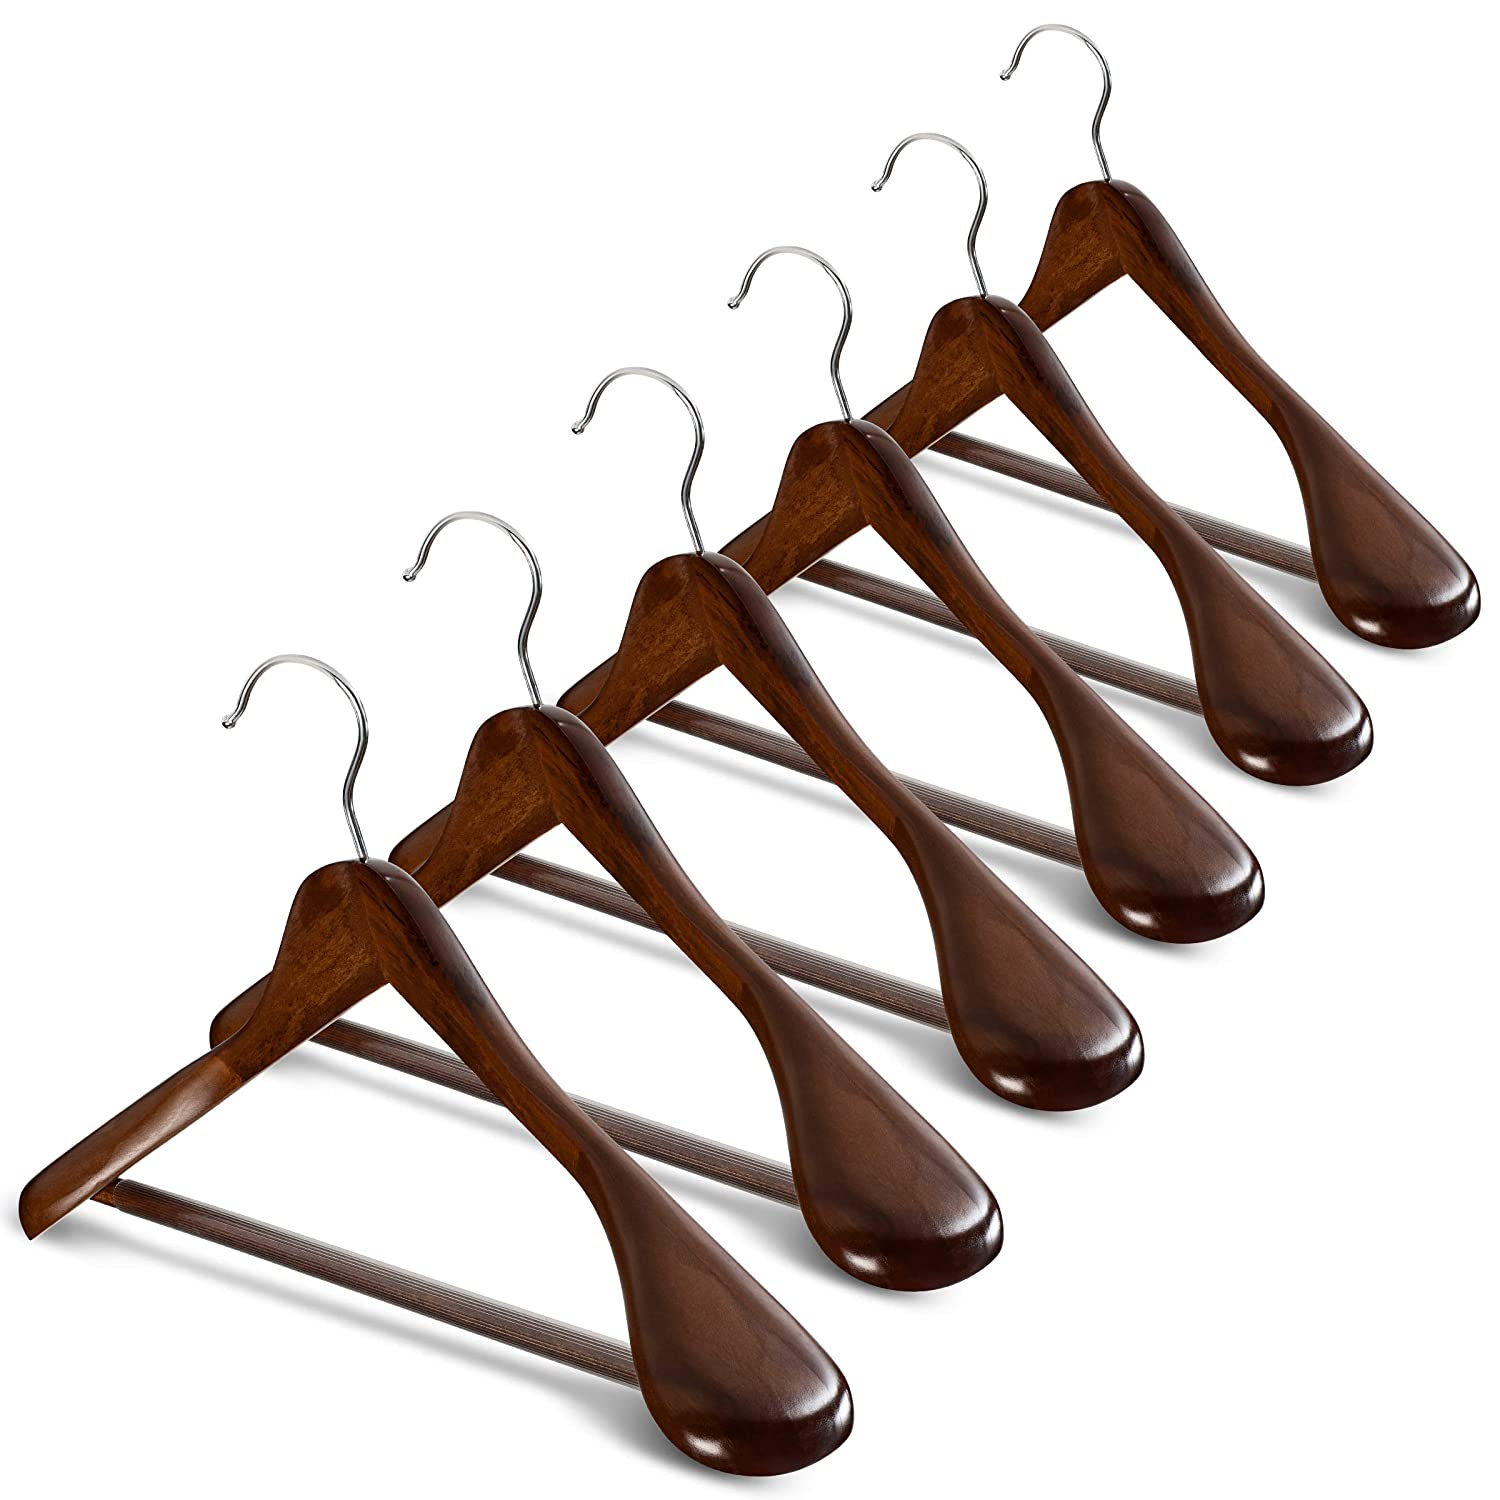 High Grade Wide Shoulder Wooden Hangers 6 Pack With Non Slip Pants Bar Smooth Finish Solid Wood Suit Hanger Coat Hanger Holds Upto 20lbs 360